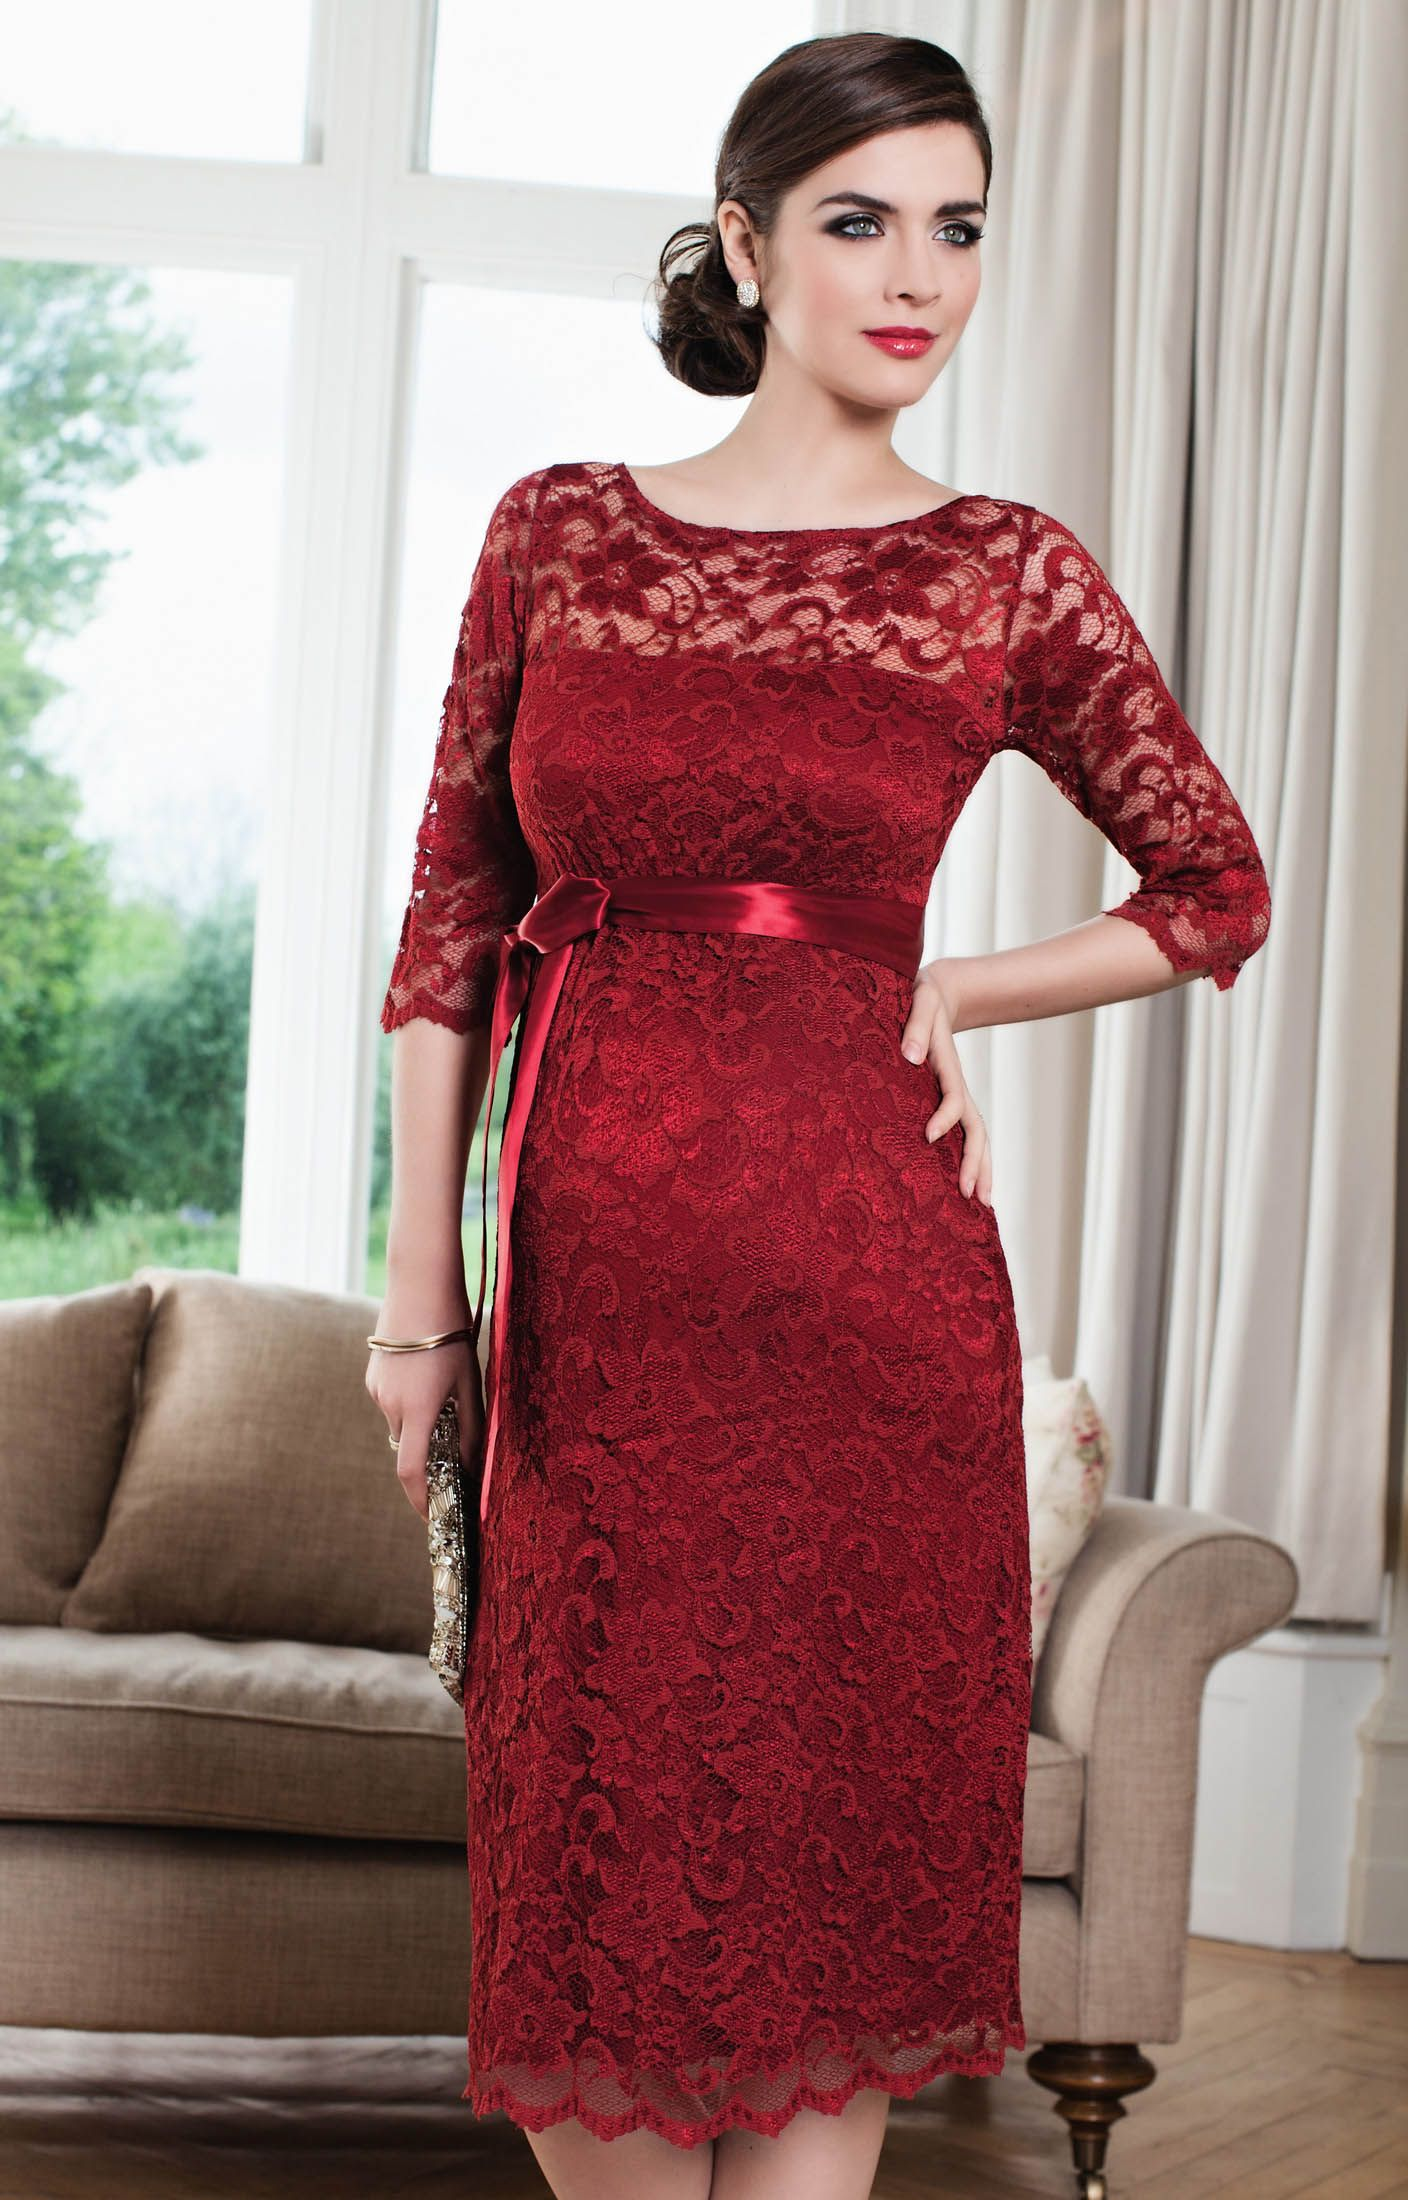 Amelia Kleid Kurz | Tiffany rose, Amelia dress and Amelia